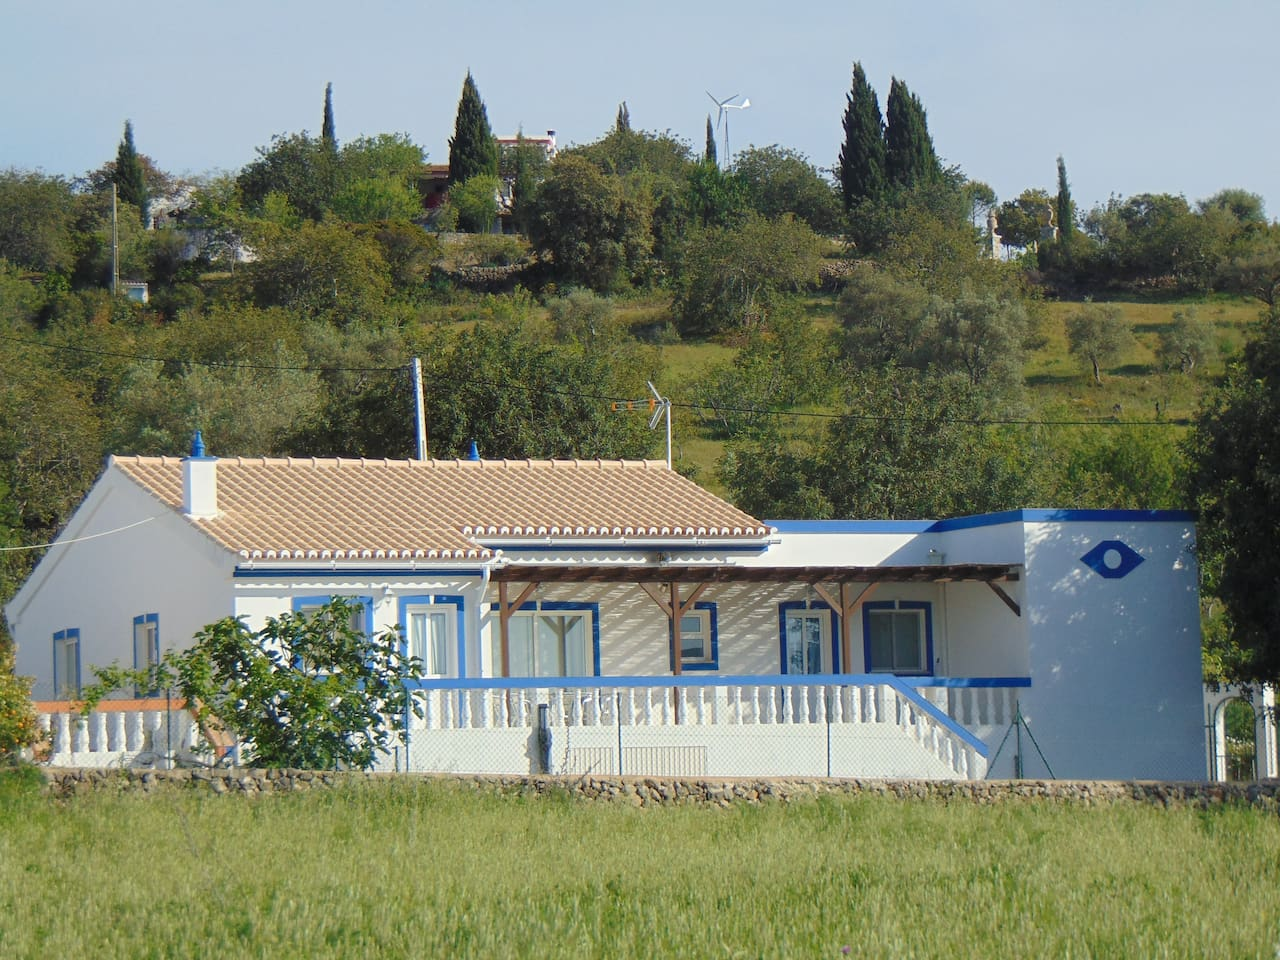 A beautiful bungalow designed in typical Algarvean style and combining modern convenience with rustic charm.